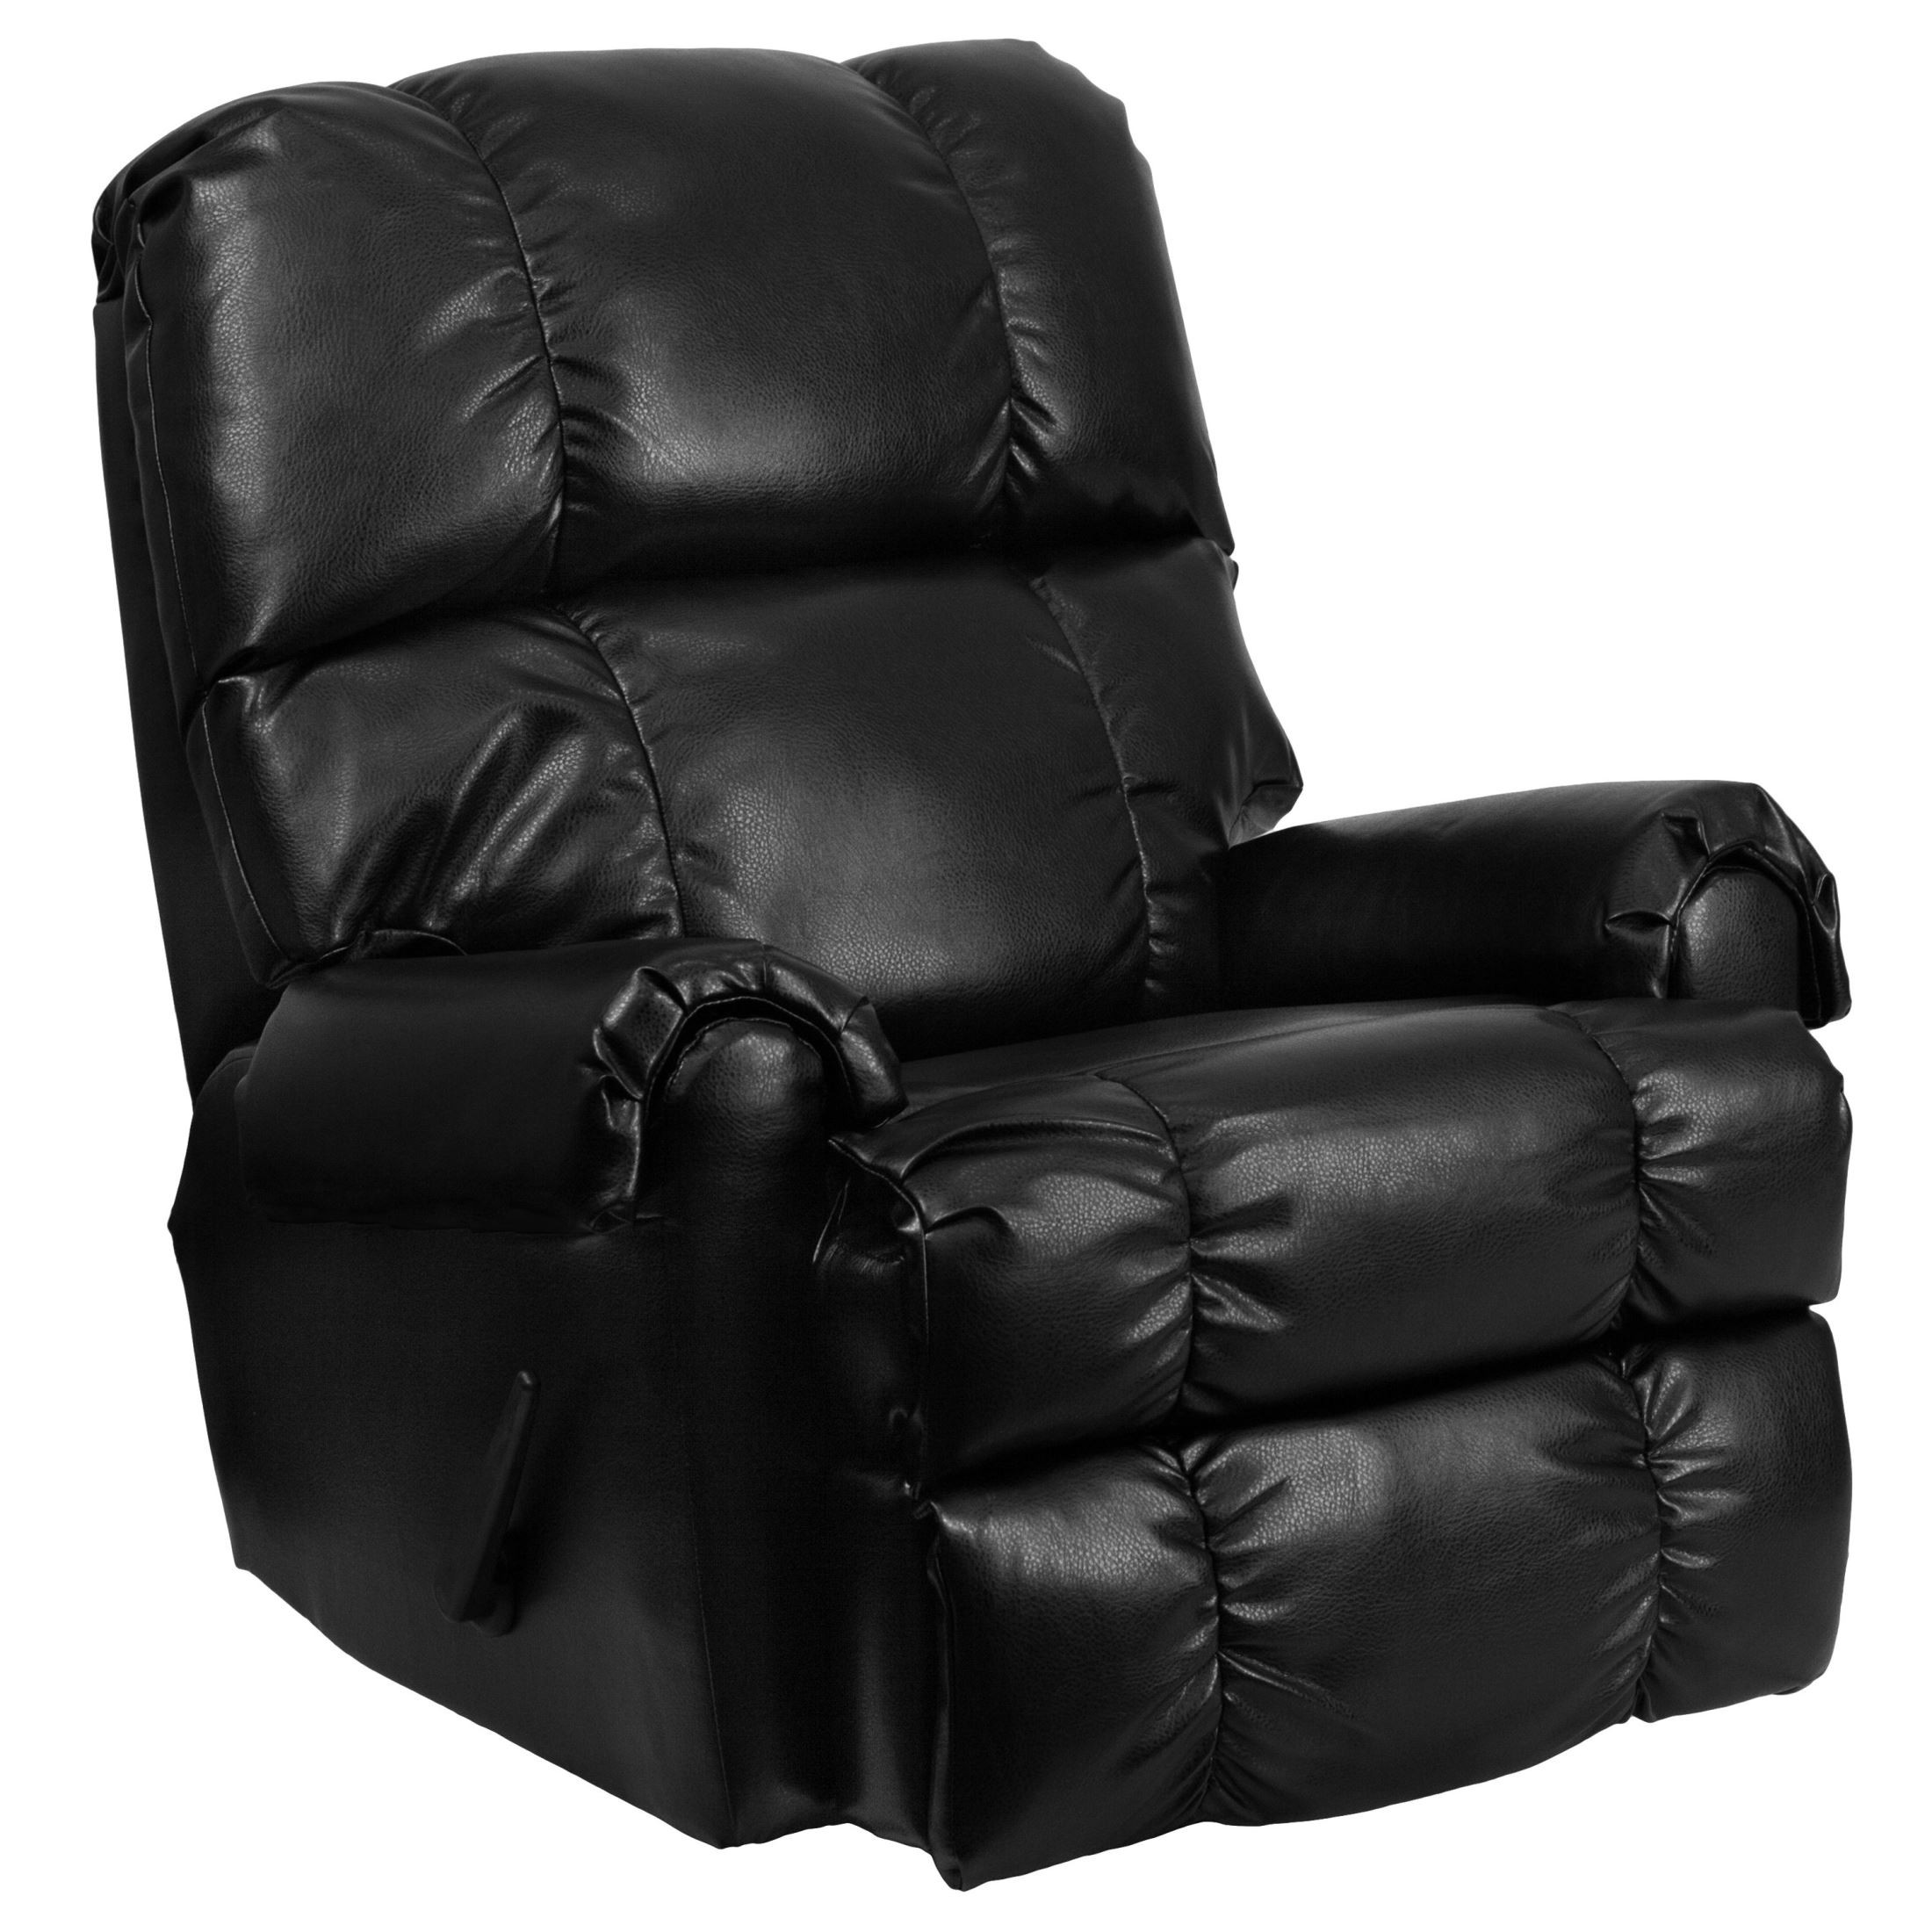 Cheap Recliner Sofas For Sale Black Leather Reclining: Ty Black Leather Rocker Recliner From Renegade